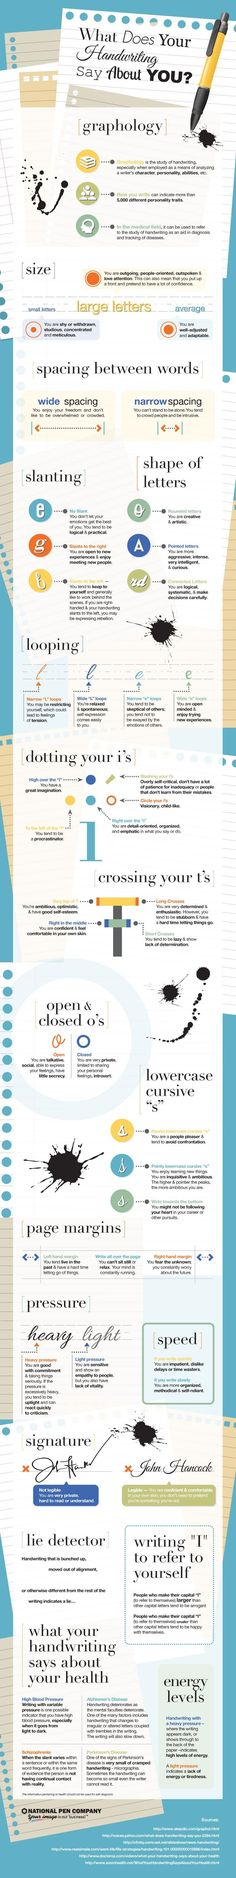 What's The Deal With Your Handwriting? (Infographic) http://www.turntherecordover.com/2014/01/whats-the-deal-with-your-handwriting-infographic/